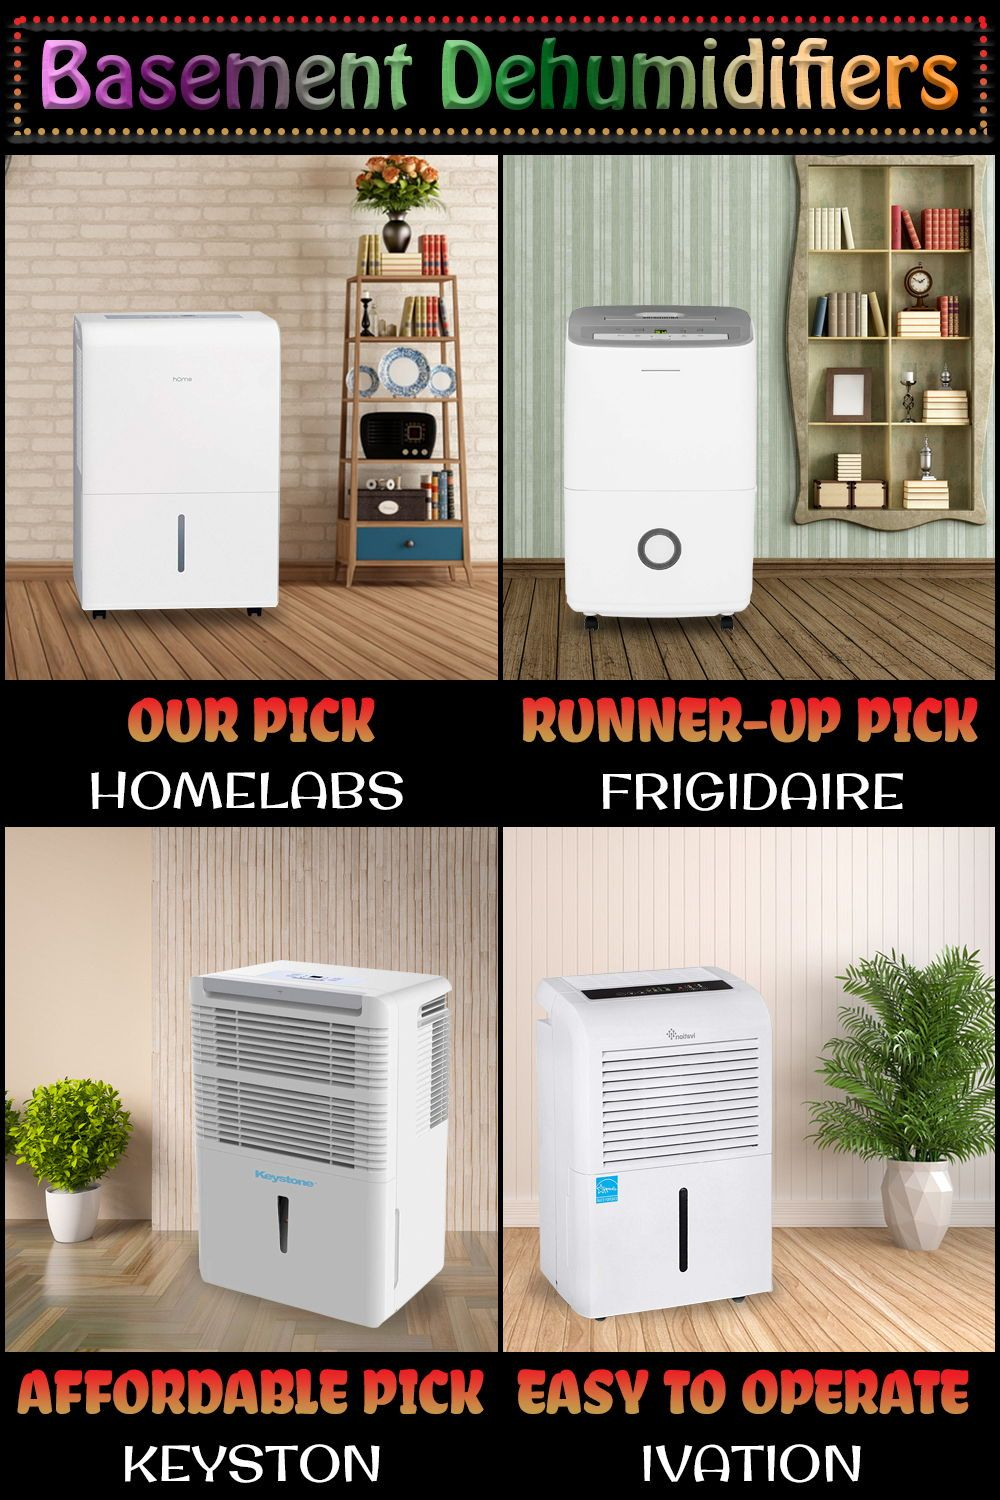 Diy Dehumidifier Top 10 Basement Dehumidifiers May 2019 Reviews Buyers Guide